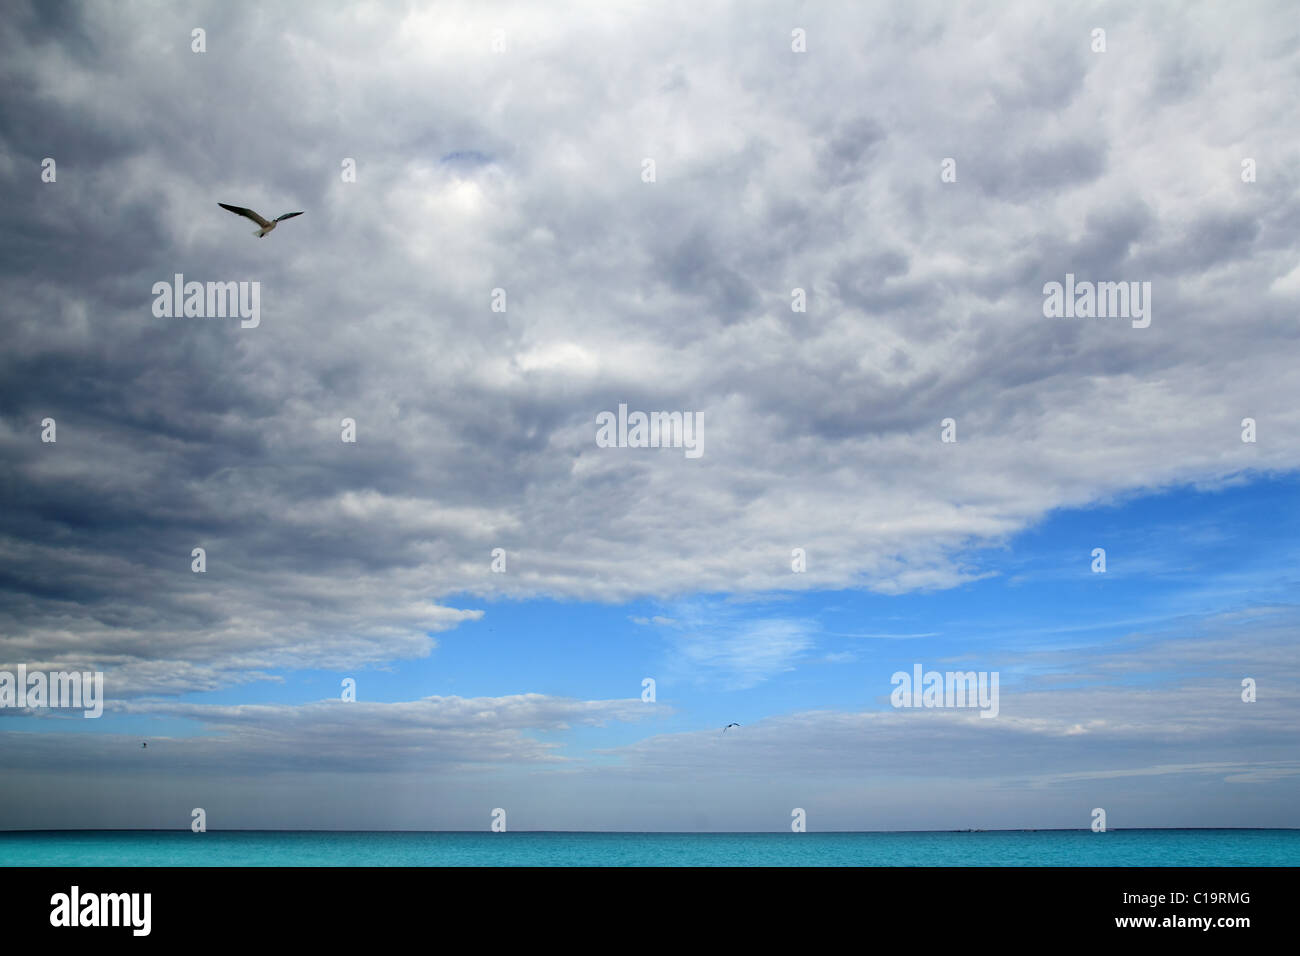 Cloudy dramatic sky in caribbean turquoise sea ocean - Stock Image